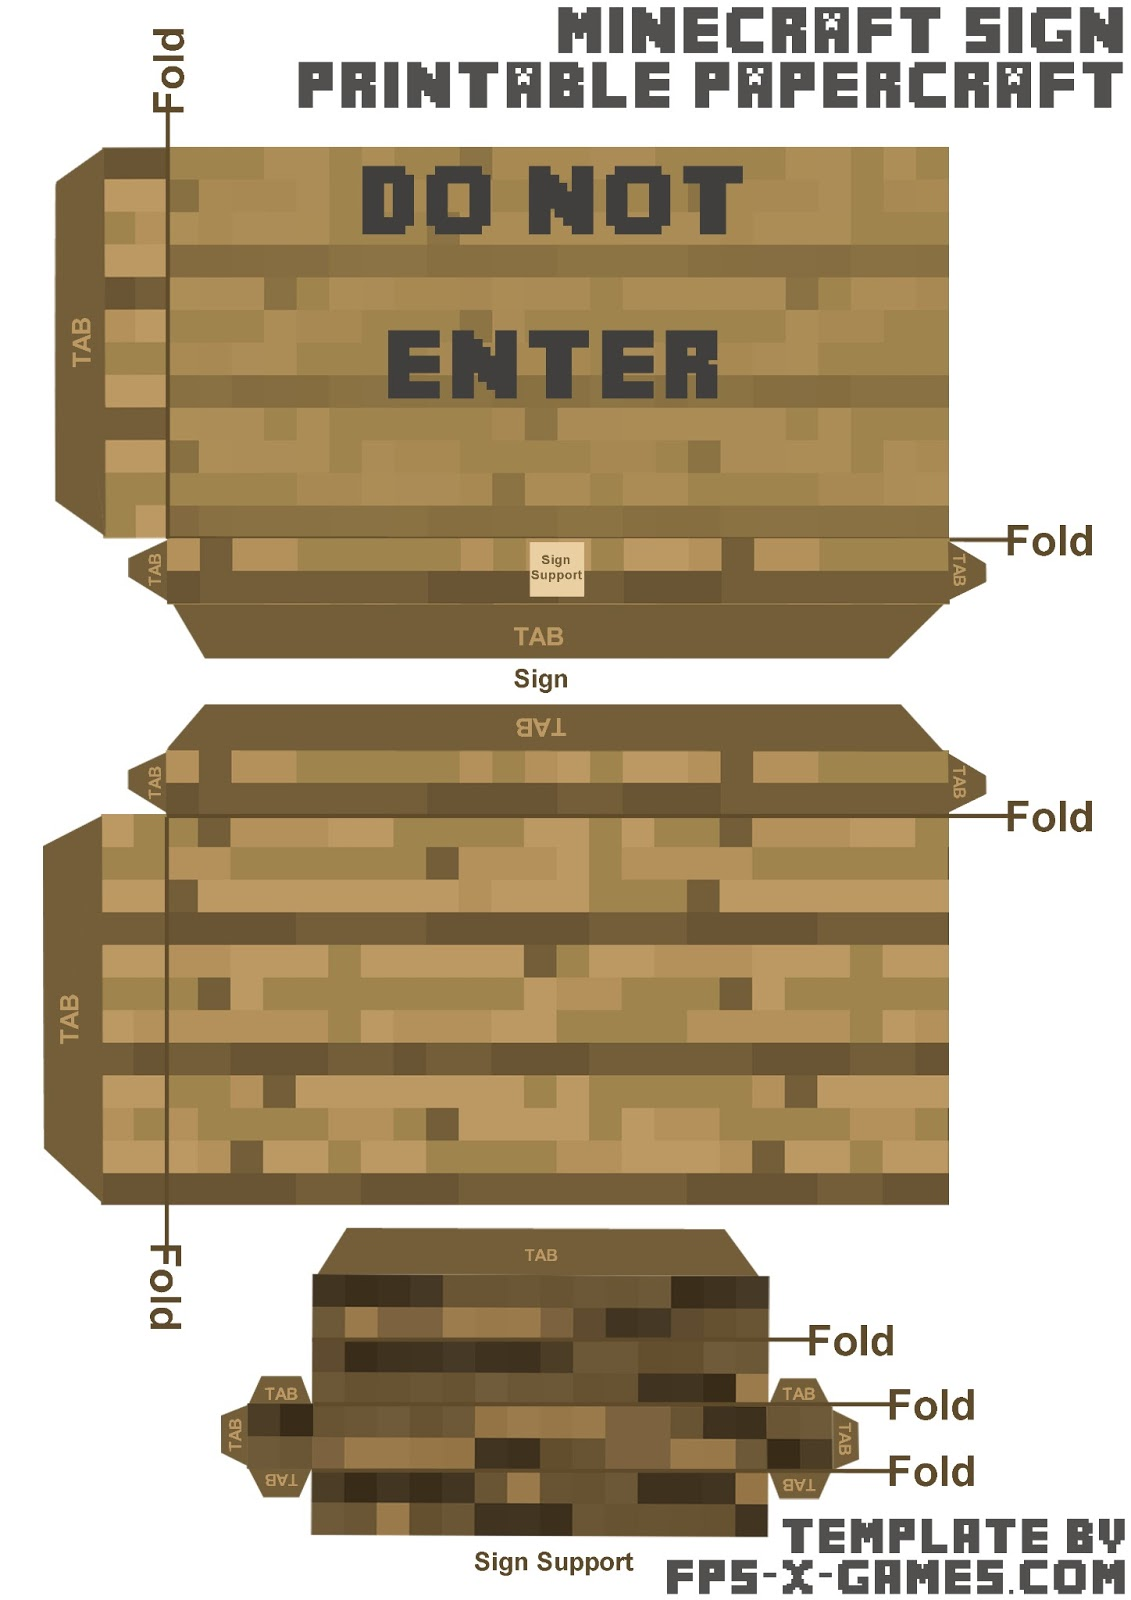 Minecraft papercraft do not enter sign template cut out for Minecraft cut out templates